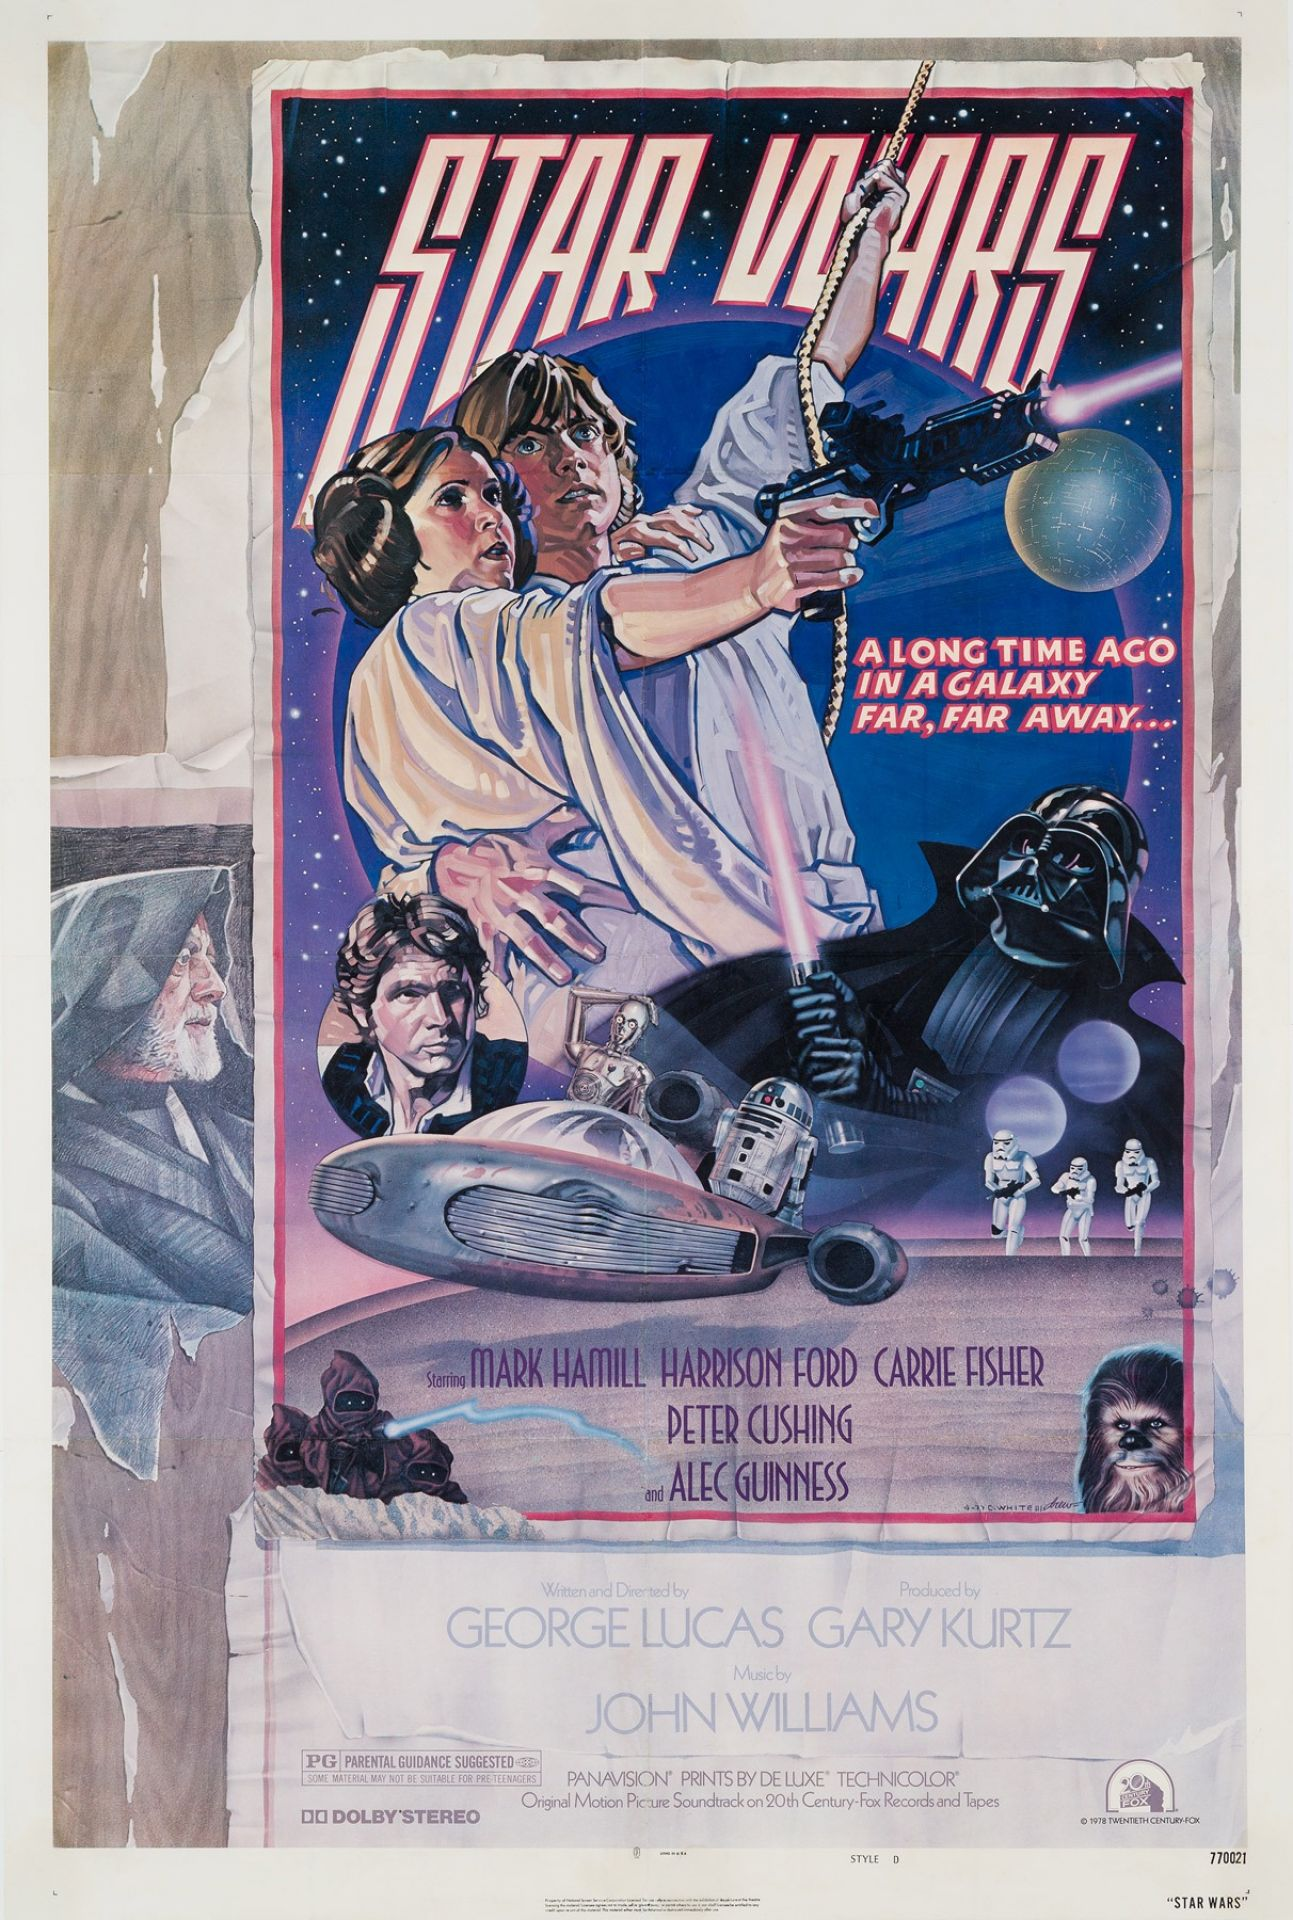 Original Star Wars 1977 US Film Movie Poster, Drew Struzen